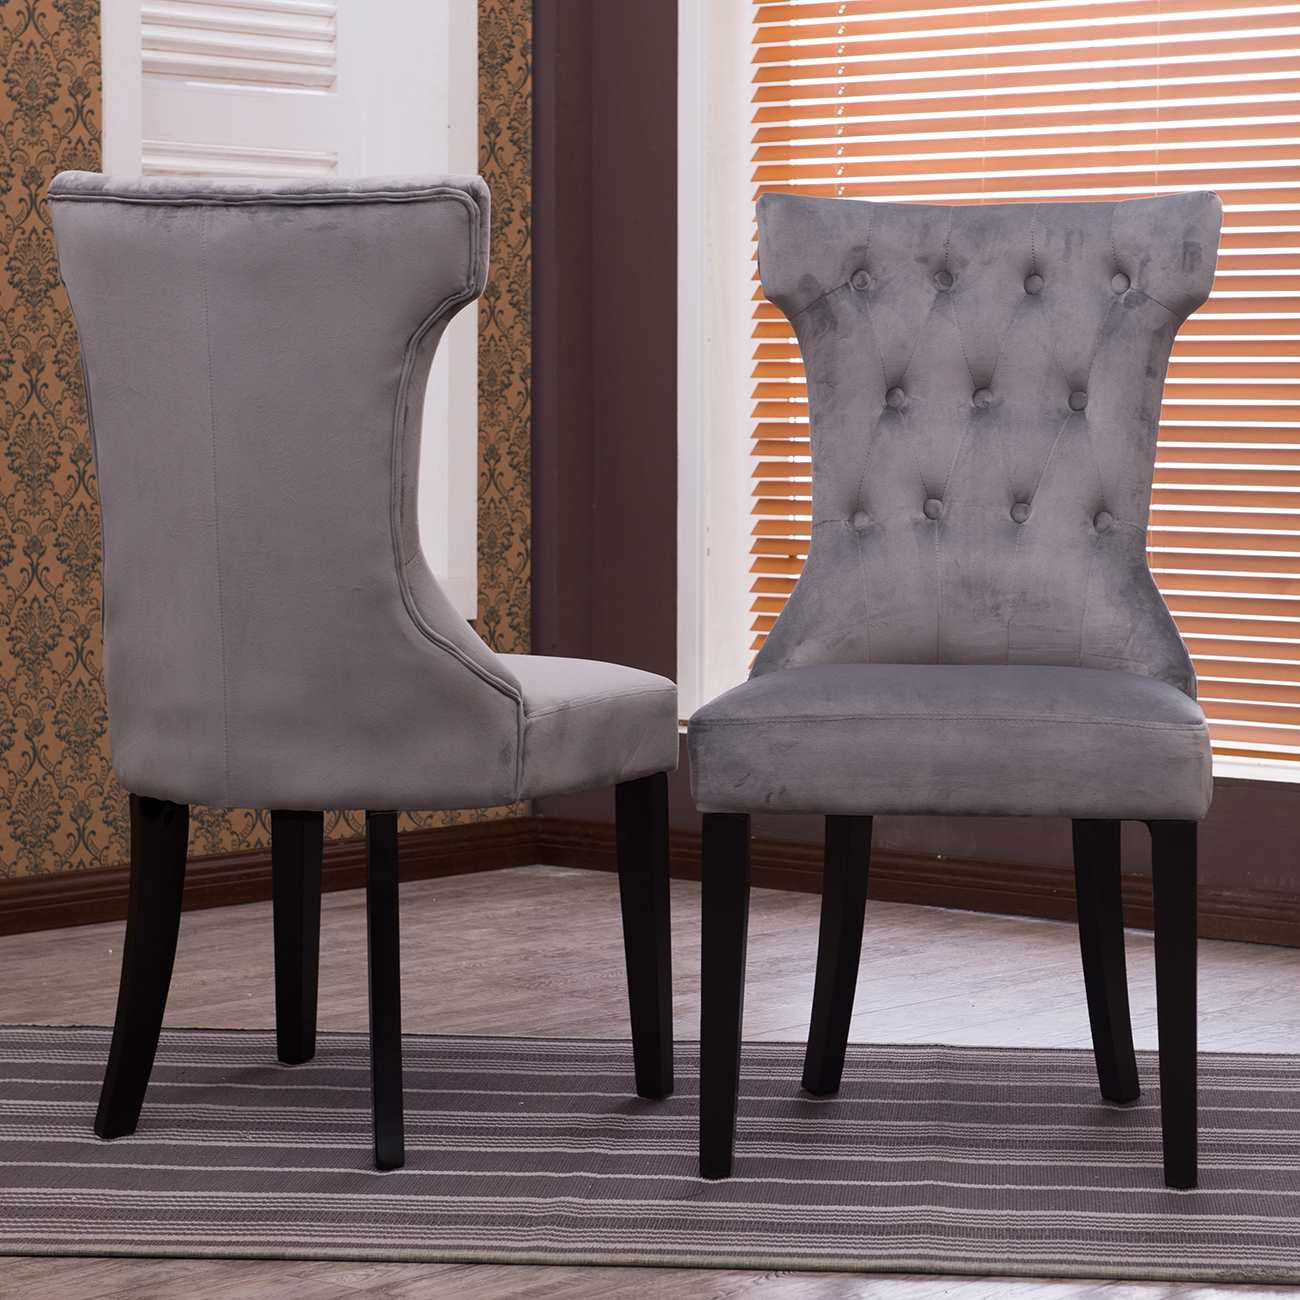 Gray Dining Room Chairs Set Of 2 Accent Dining Chair Fabric Tufted Modern Living